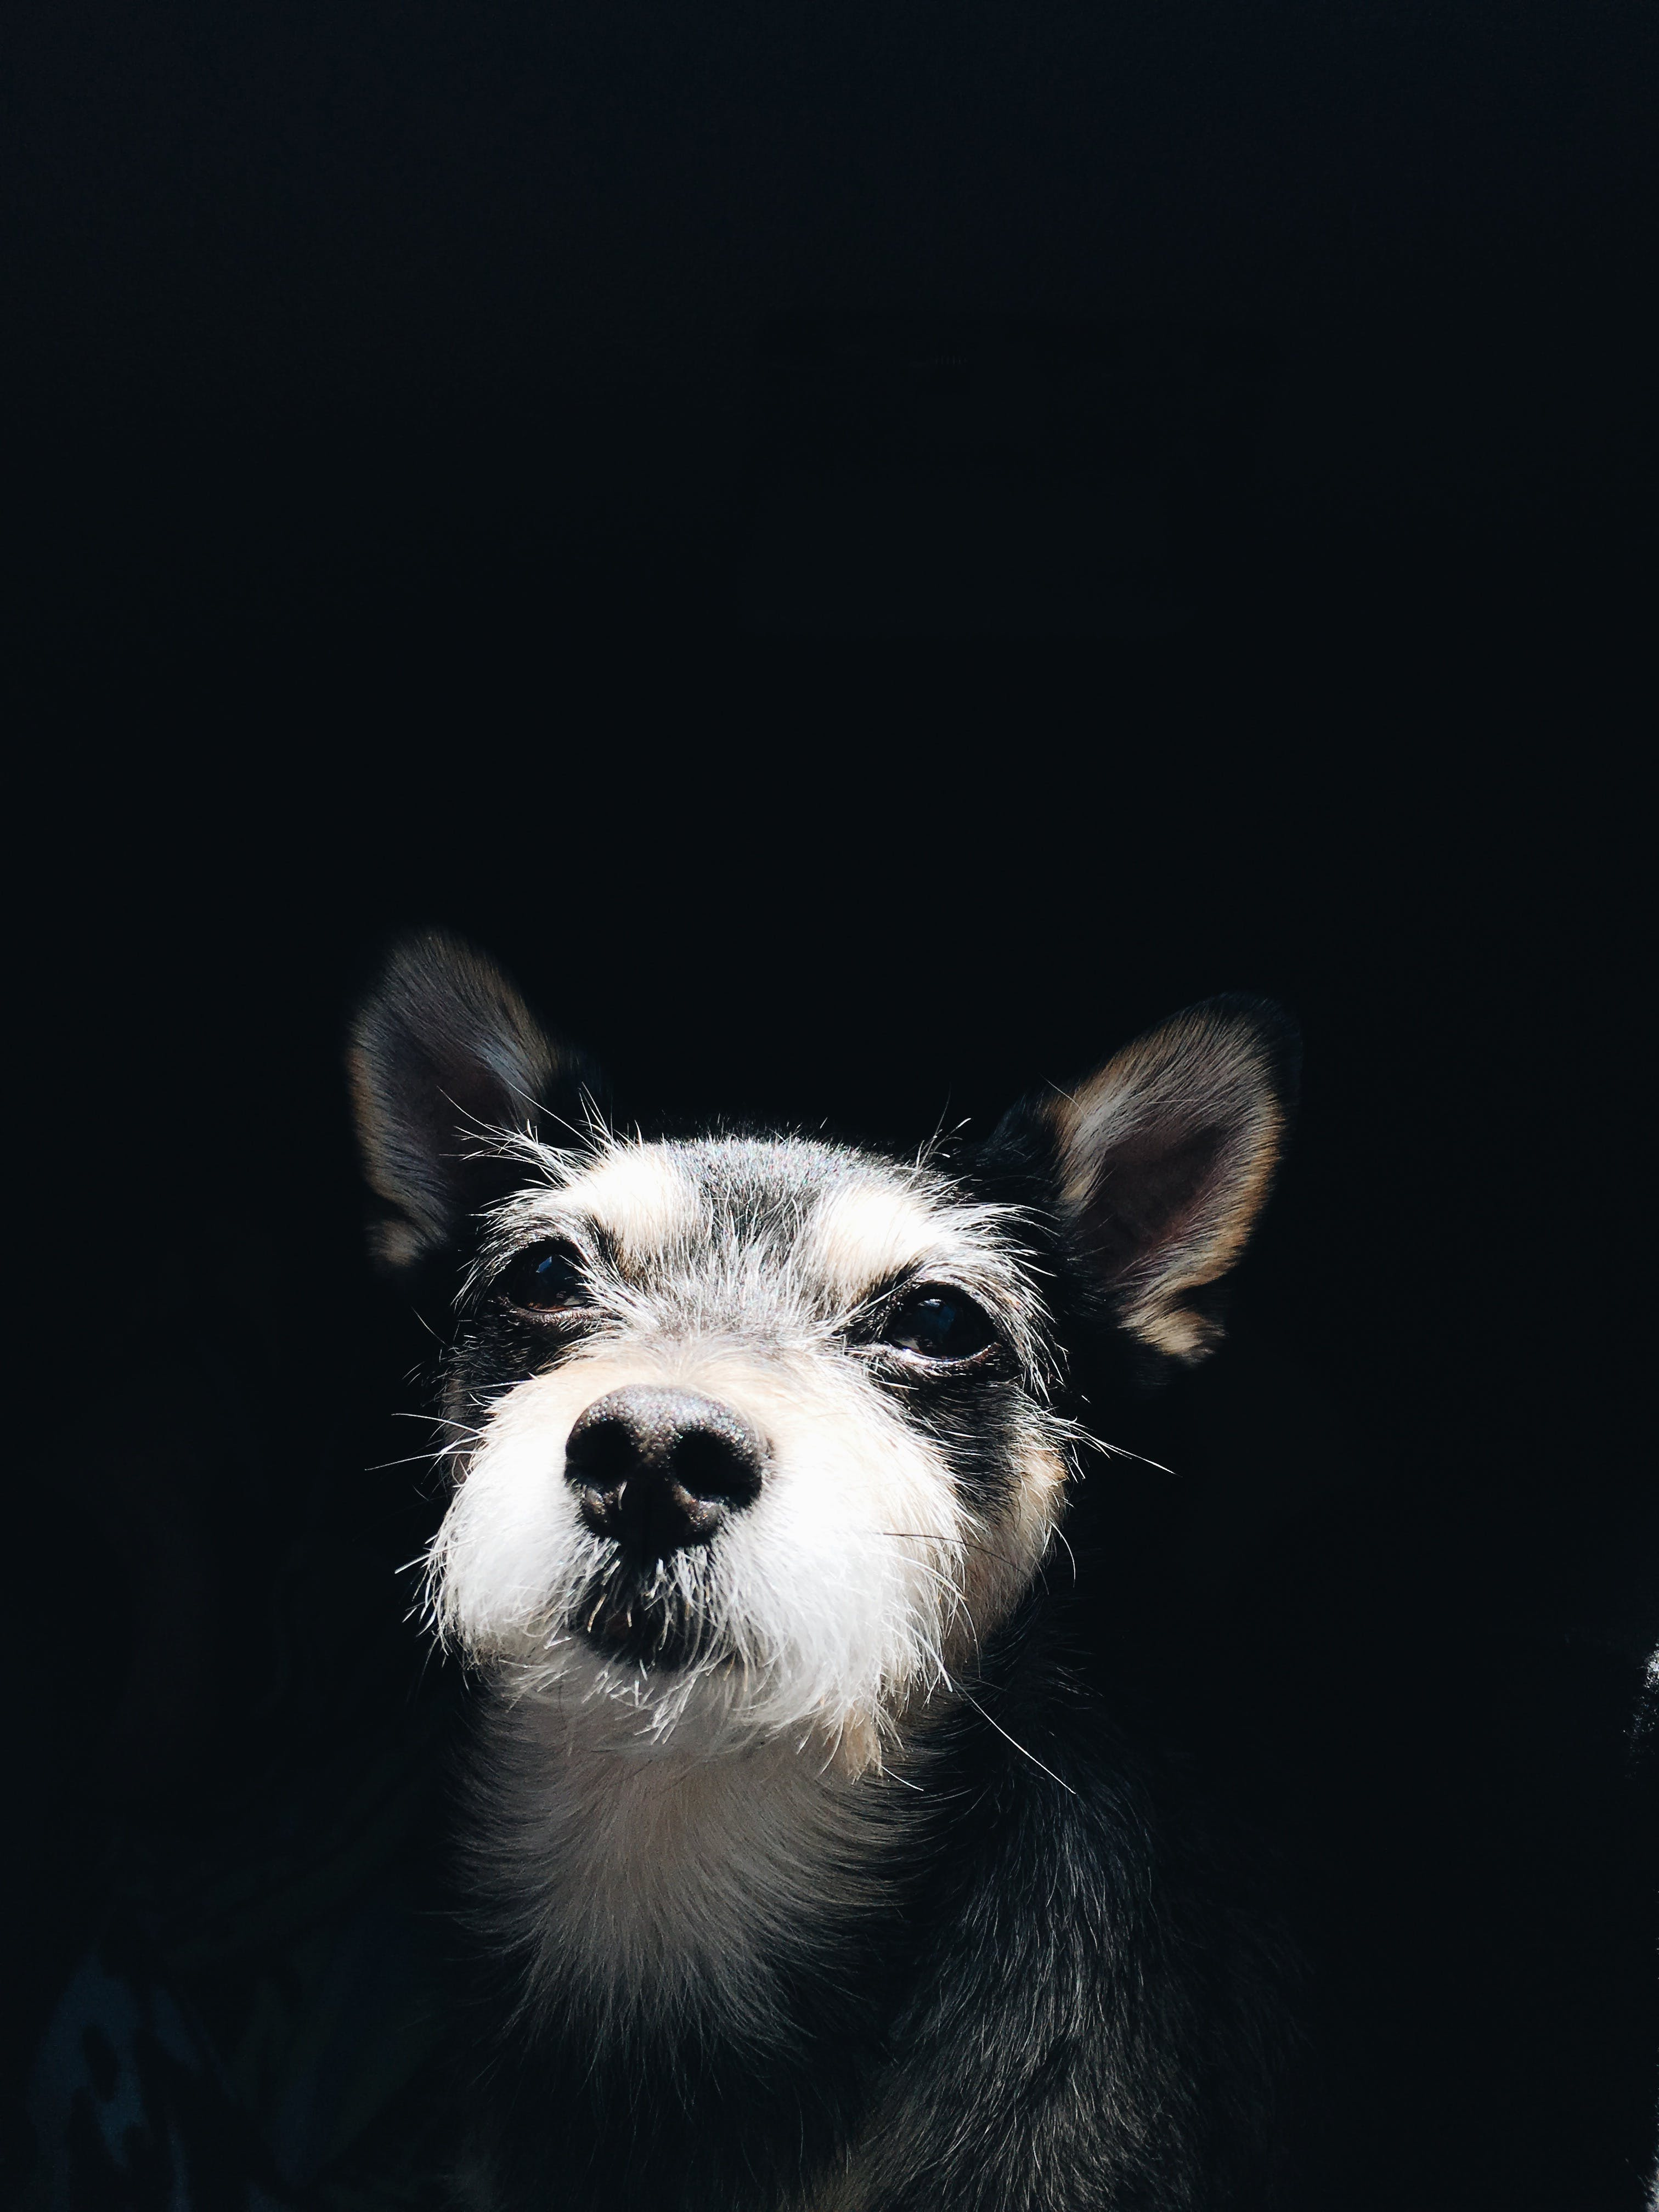 Photo Of A Puppy